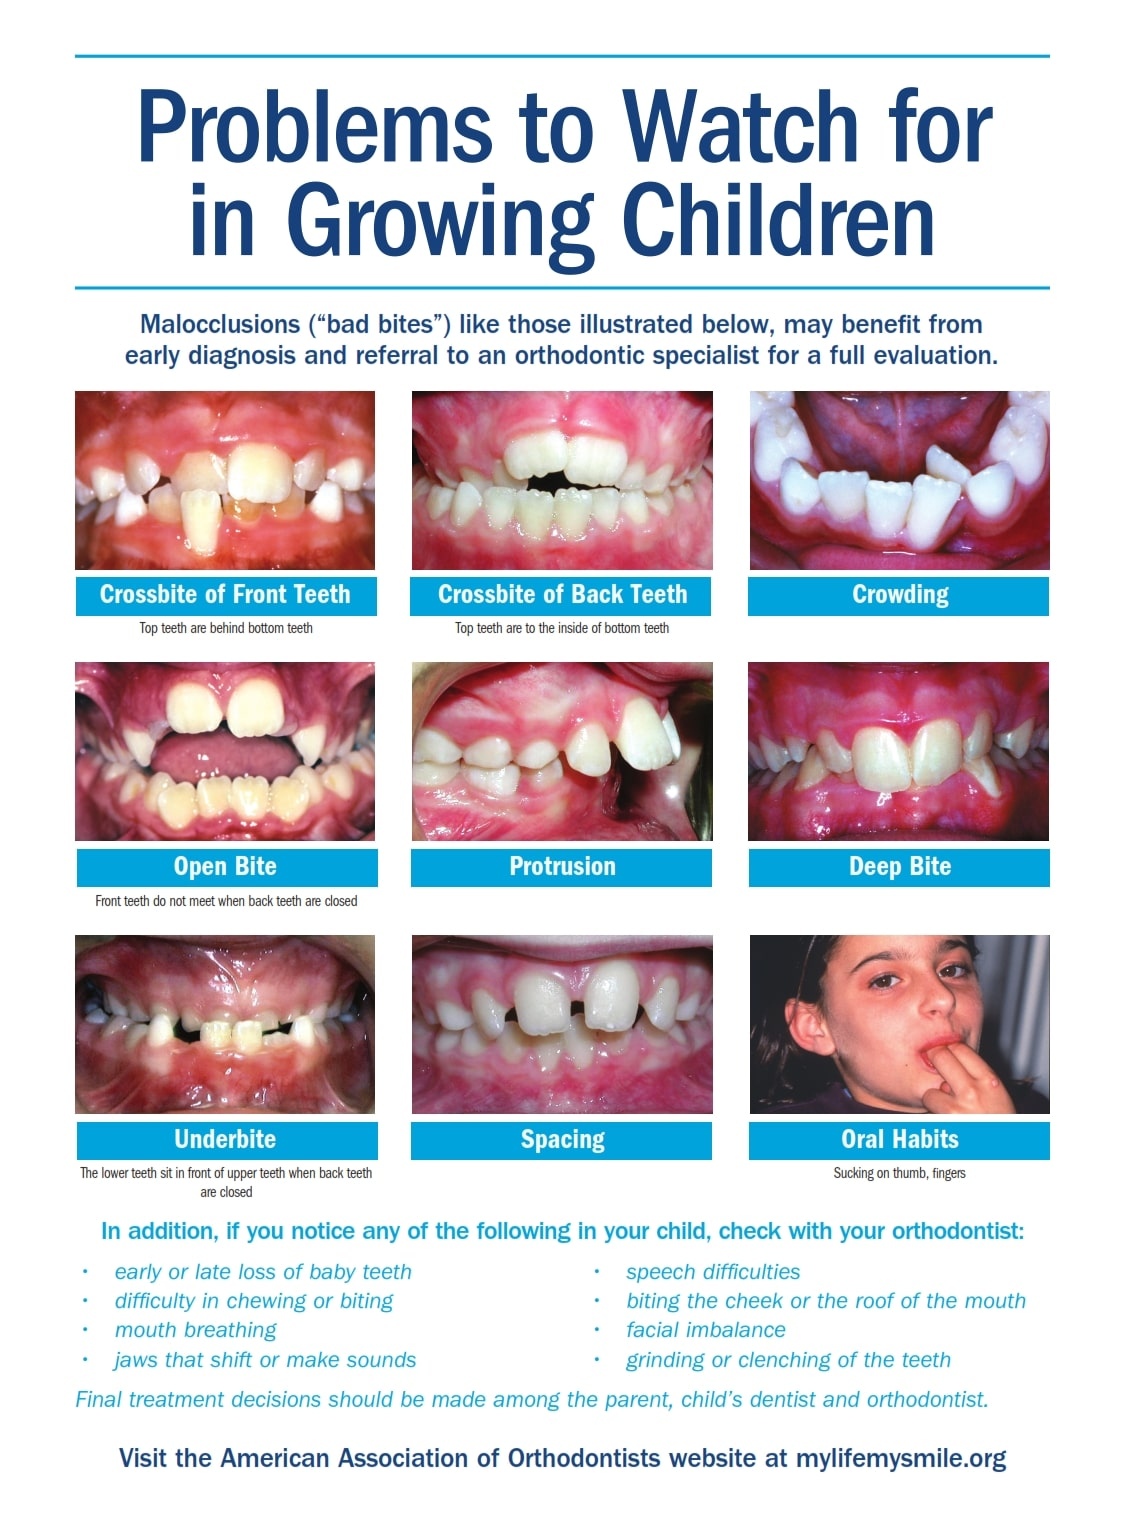 Problems to Watch for in Growing_Children - Forest Hills Top Orthodontist for Invisalign and Braces children Orthodontic Problems to Watch for in Children PTWF Growing Children 14 lh2 002 - Queens NY Orthodontist for Invisalign and Clear Braces